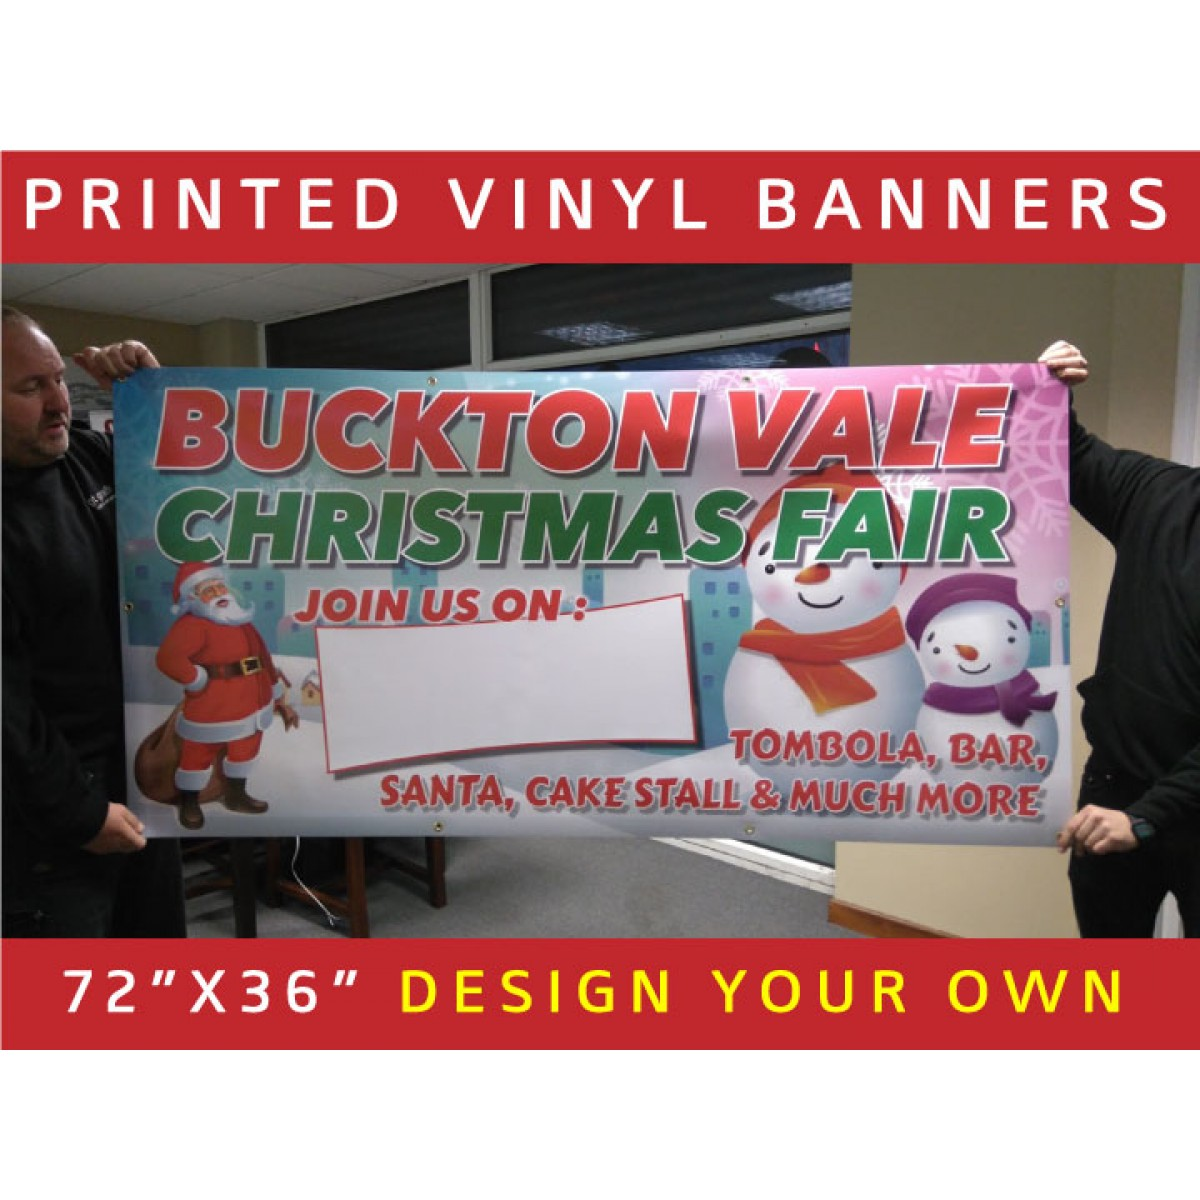 printed vinyl banners  design your own!  the sign designer